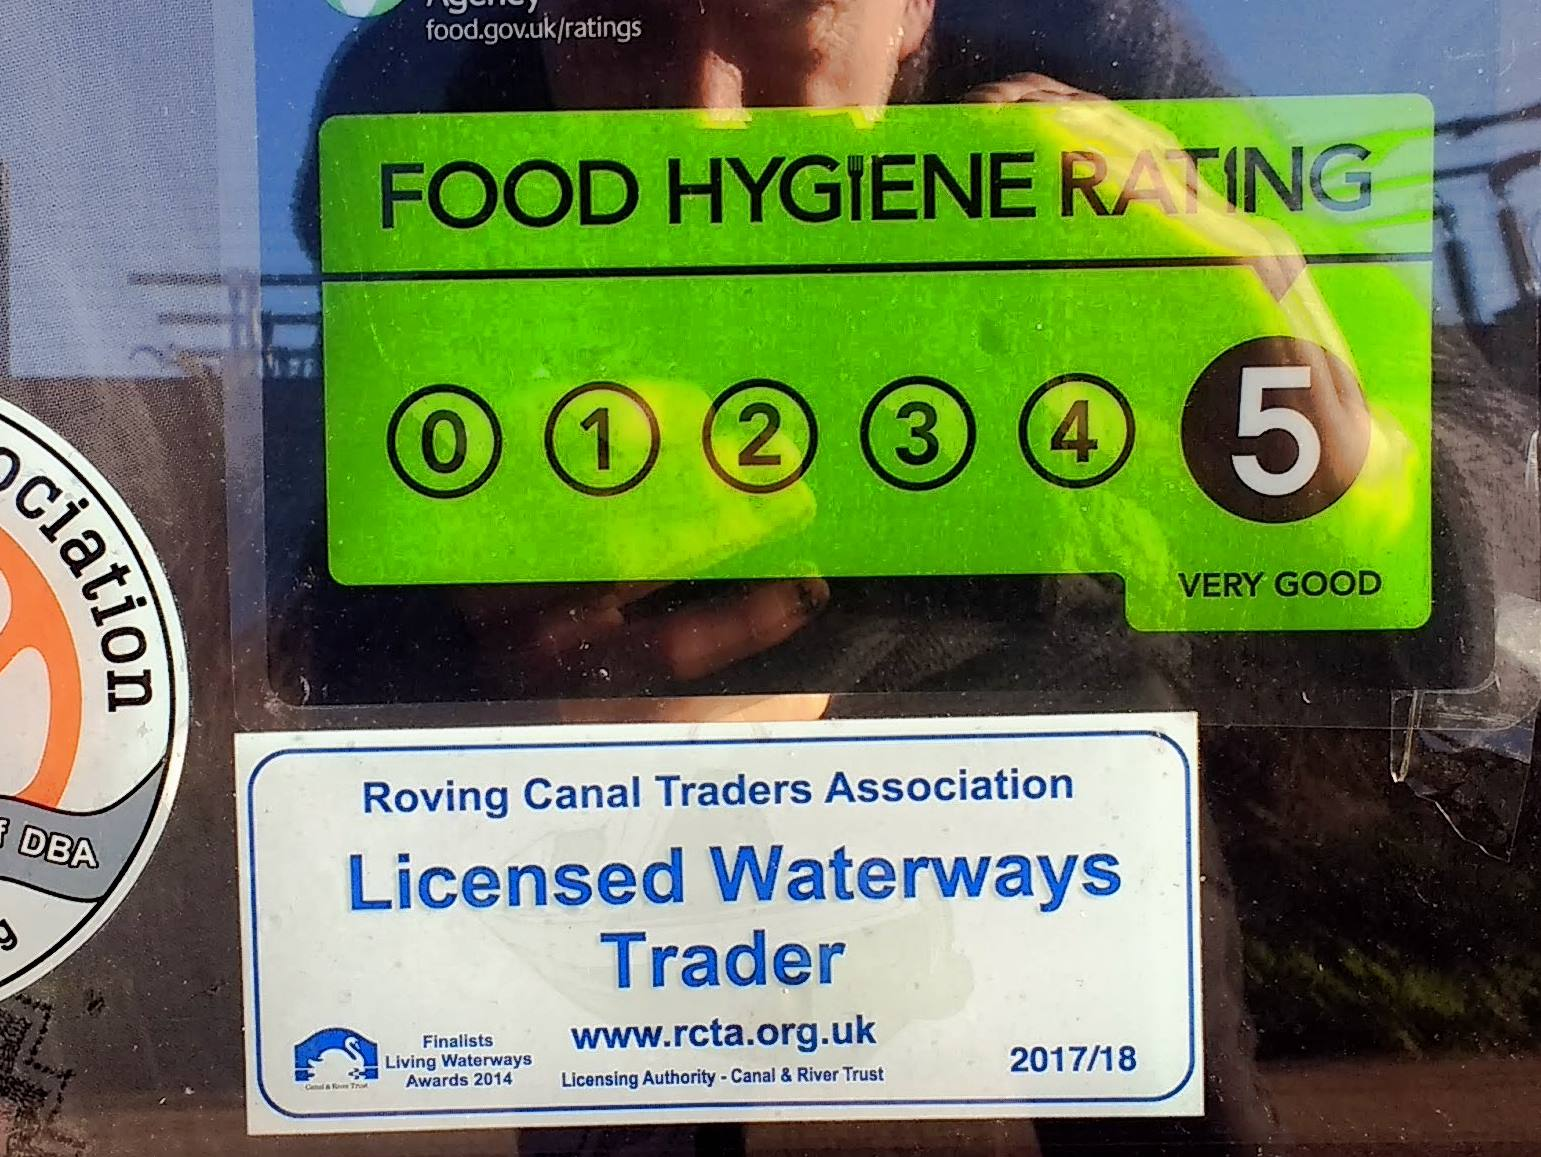 Our 5-star food hygiene rating from Dacorum Borough Council